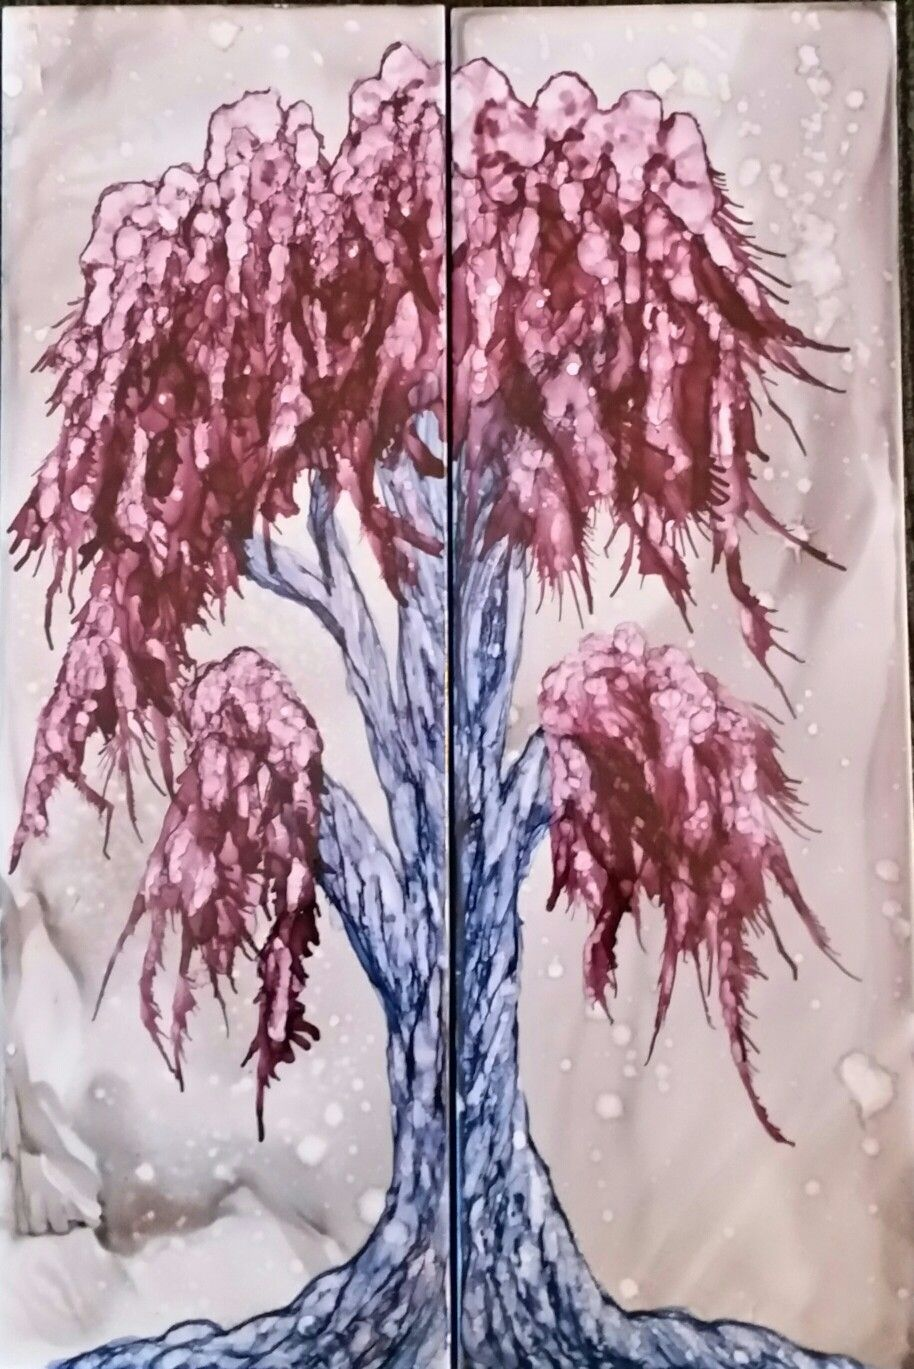 Mystical winter tree in alcohol ink on 12x4 ceramic tile by Tina